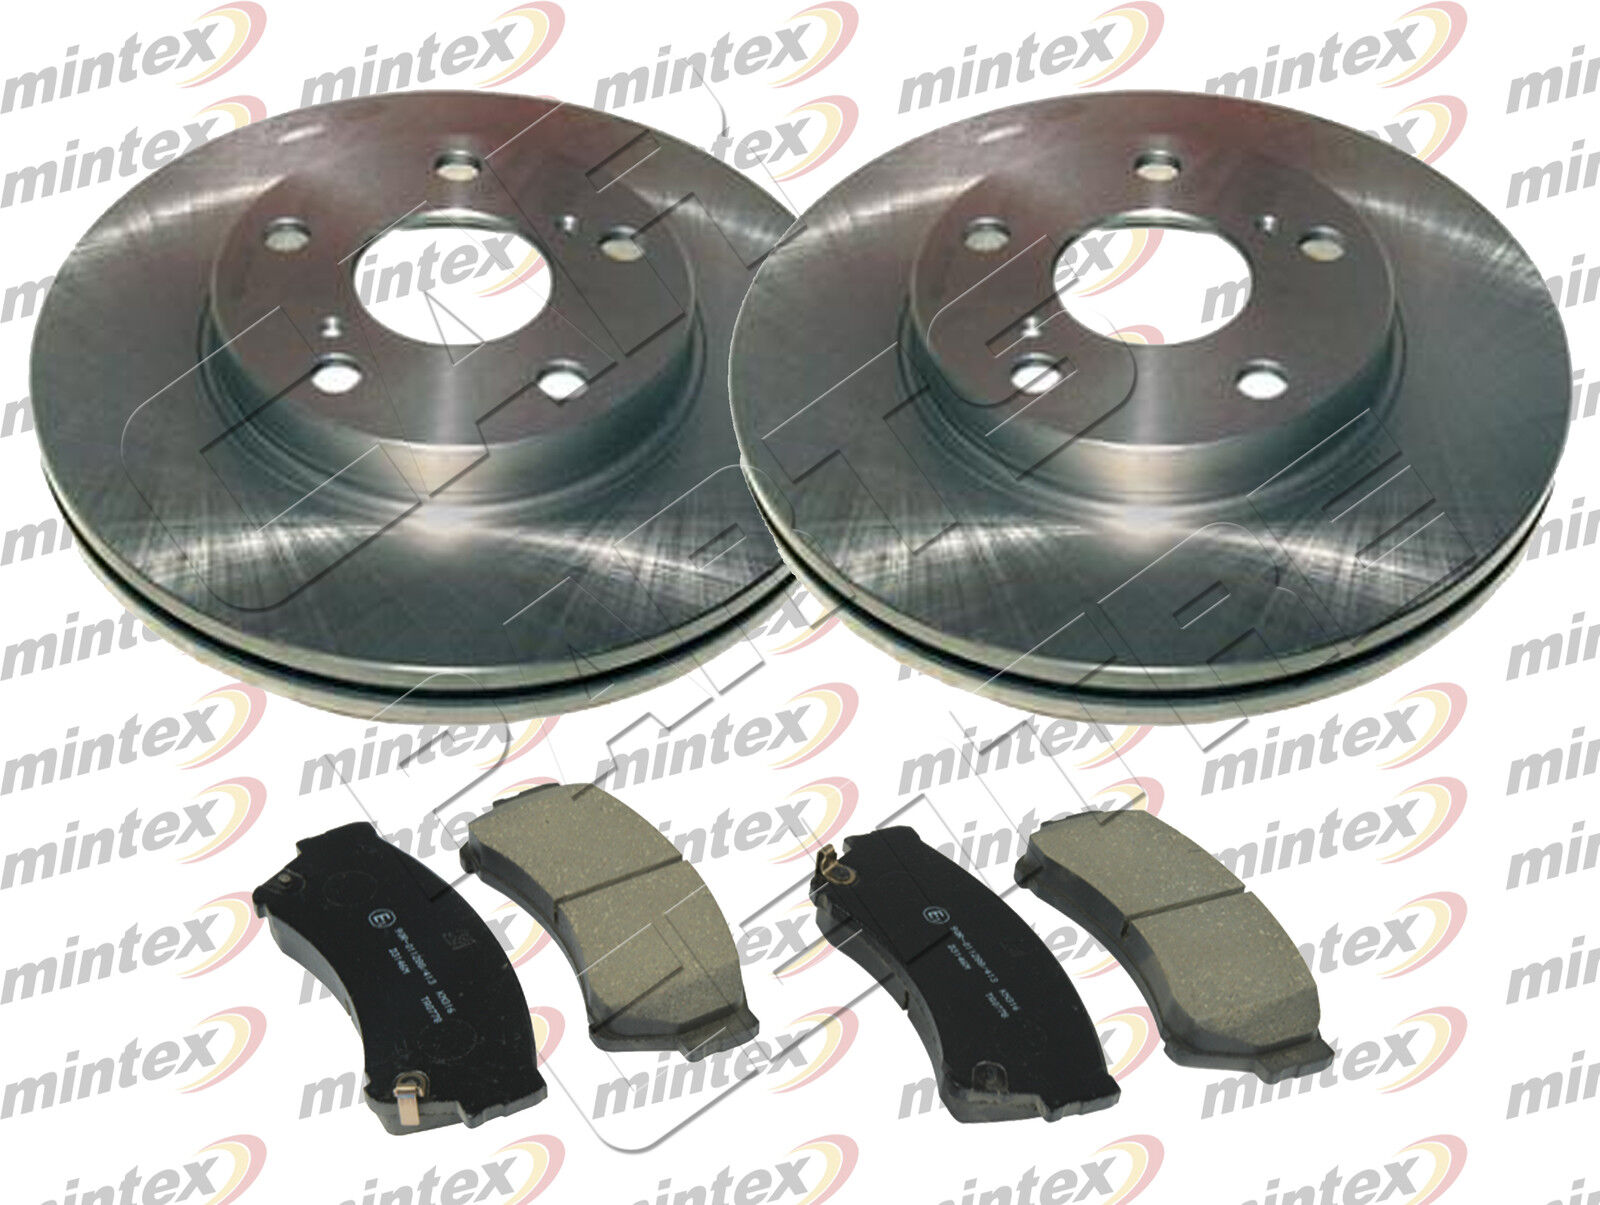 FOR MAZDA 6 GH 2.2 DIESEL 2.2DT FRONT MINTEX BRAKE DISCS and PAD ...